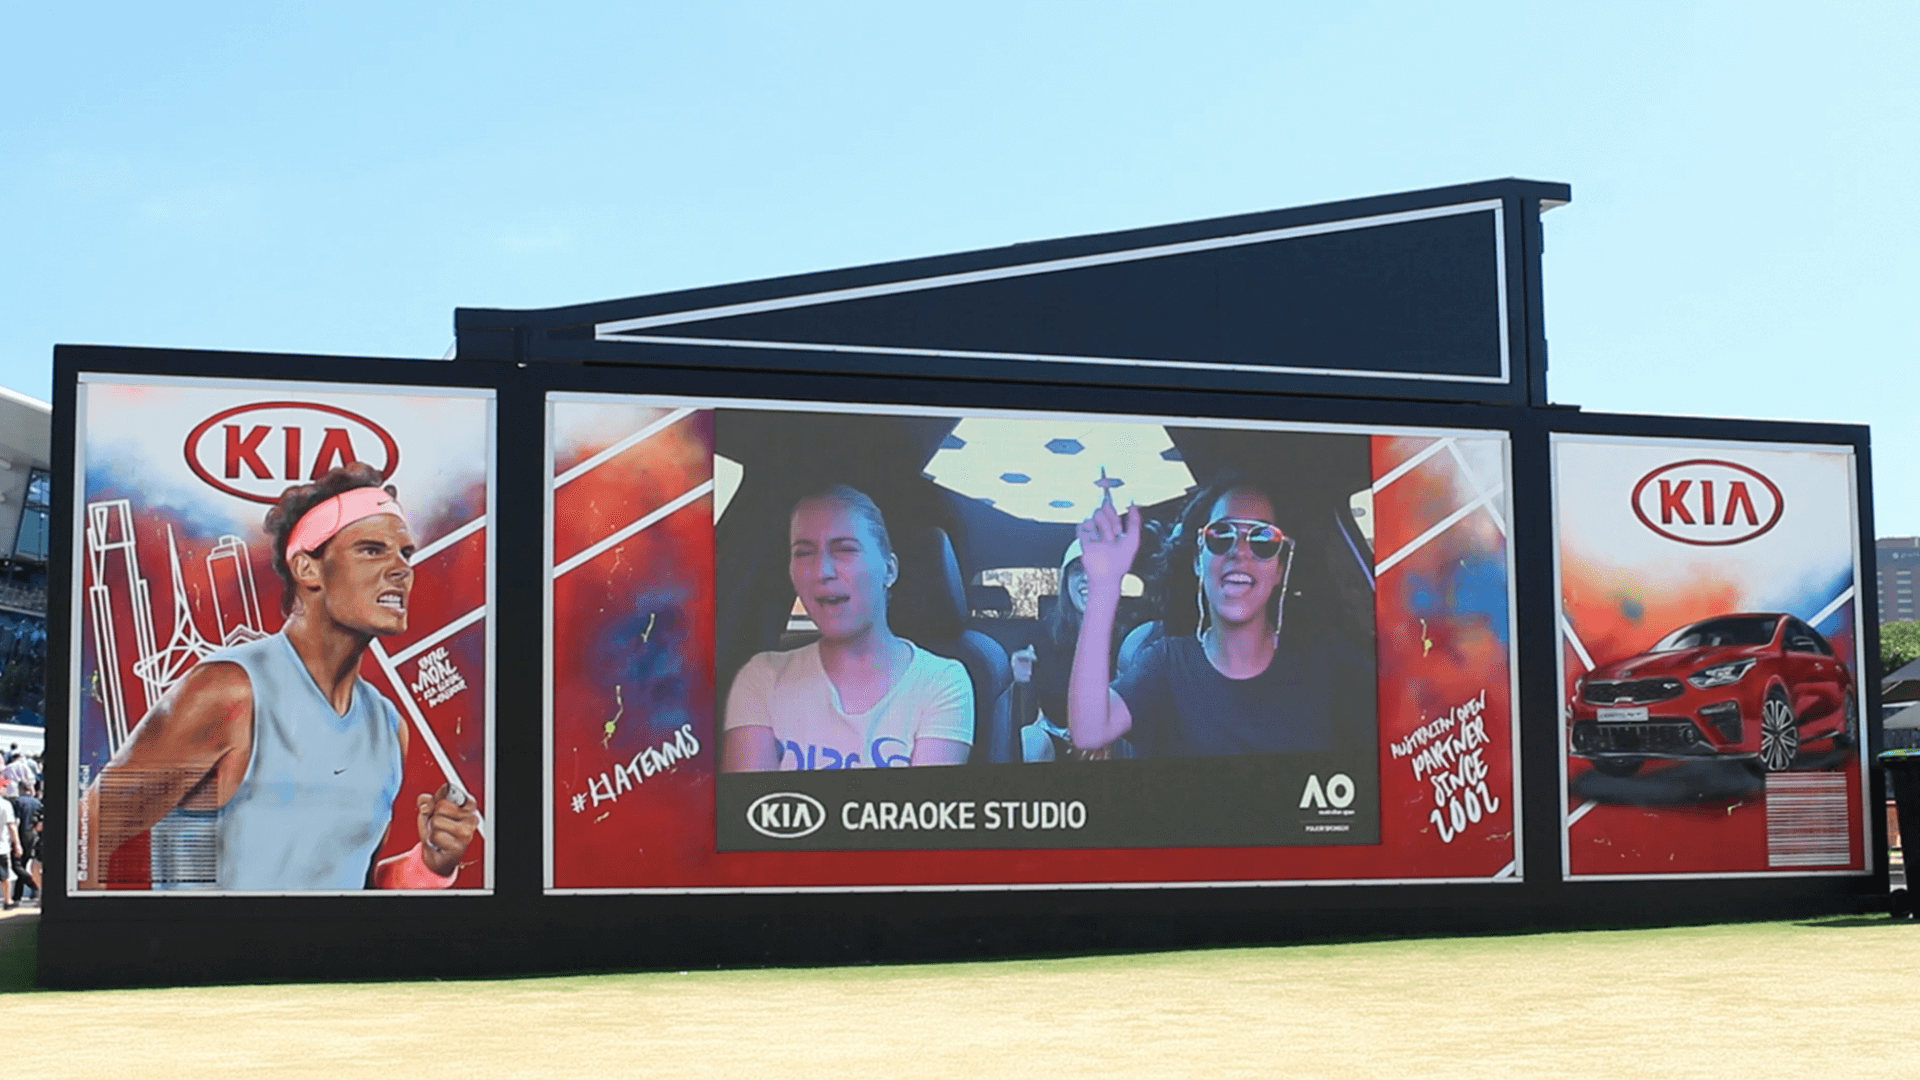 Outdoor screen for Kia Caraoke at Australian Open